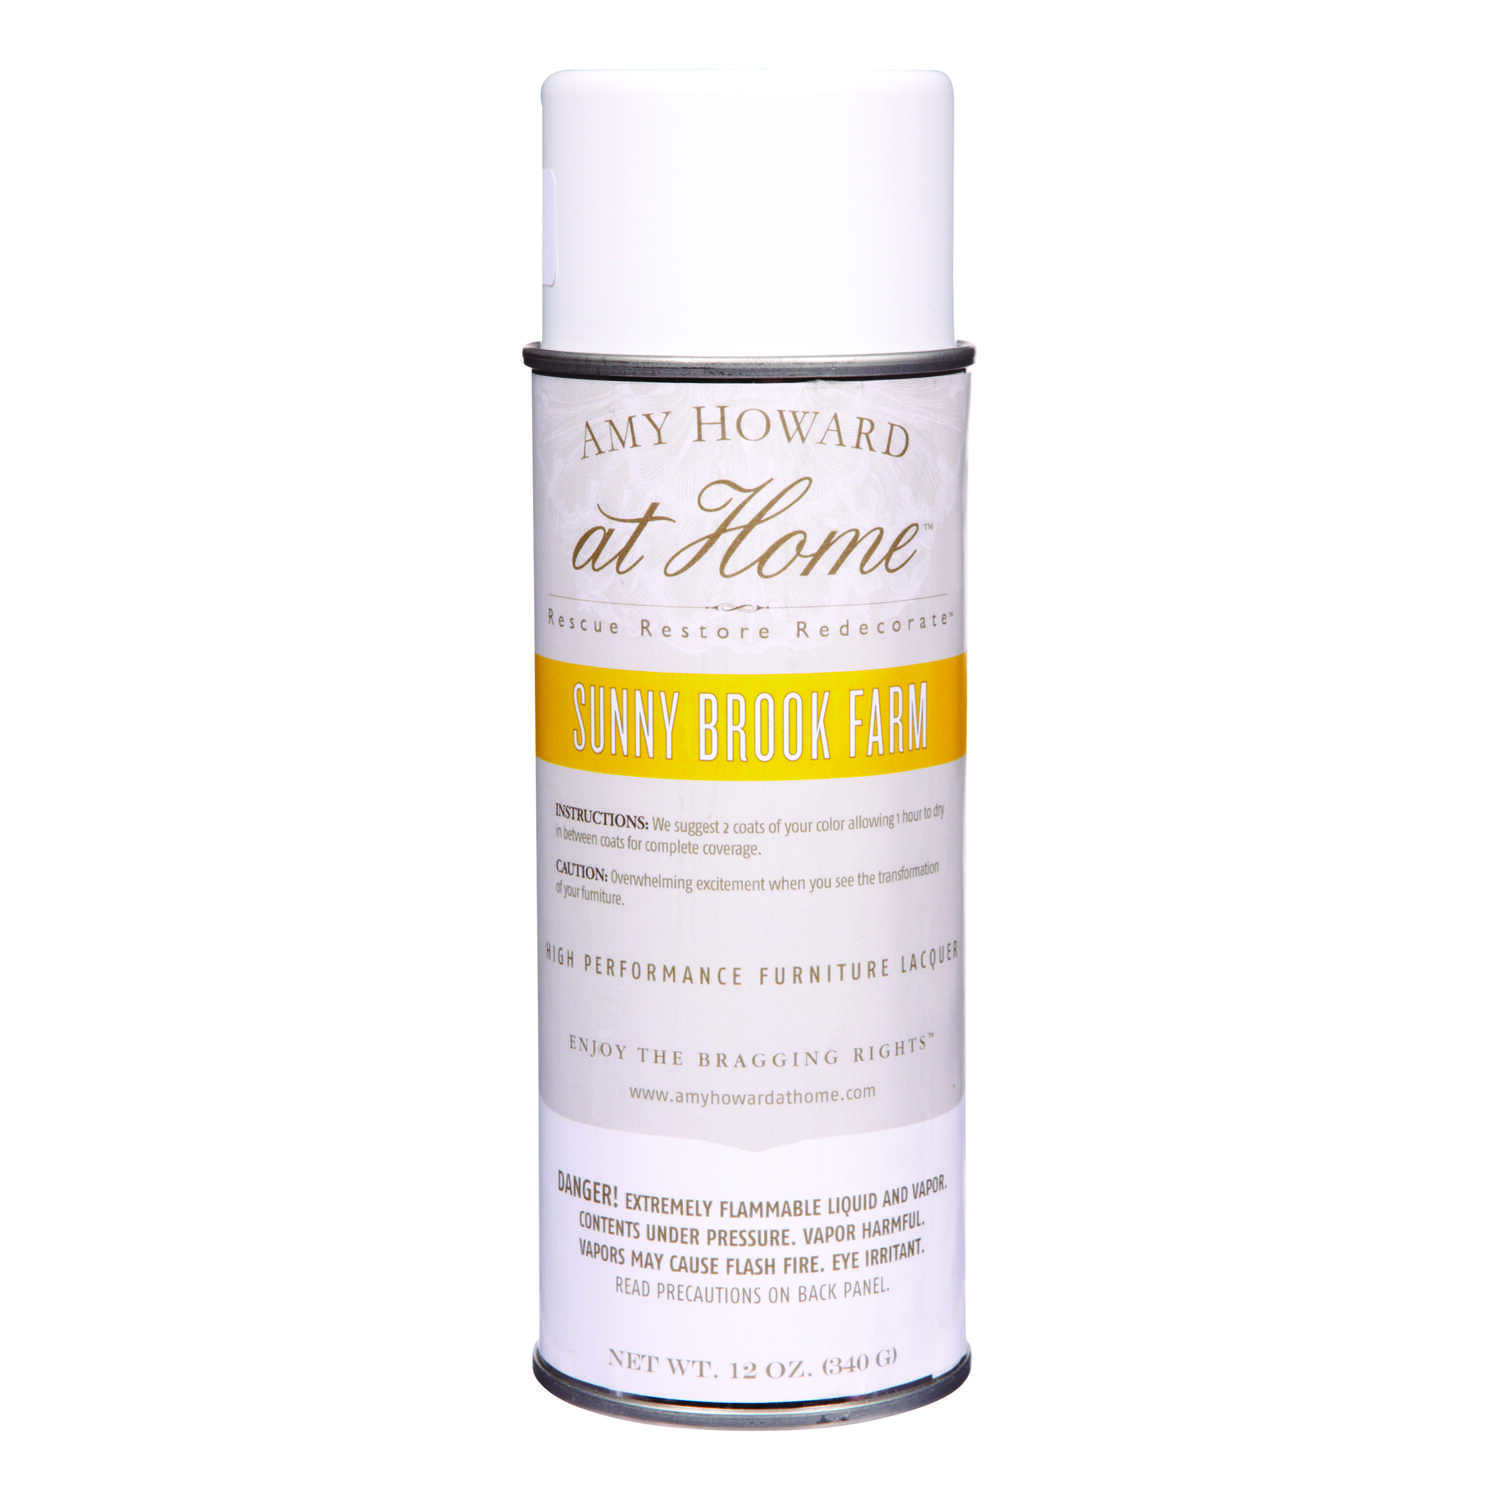 Amy Howard at Home  Gloss  Sunny Brook Farm  High Performance Furniture Lacquer Spray  12 oz.